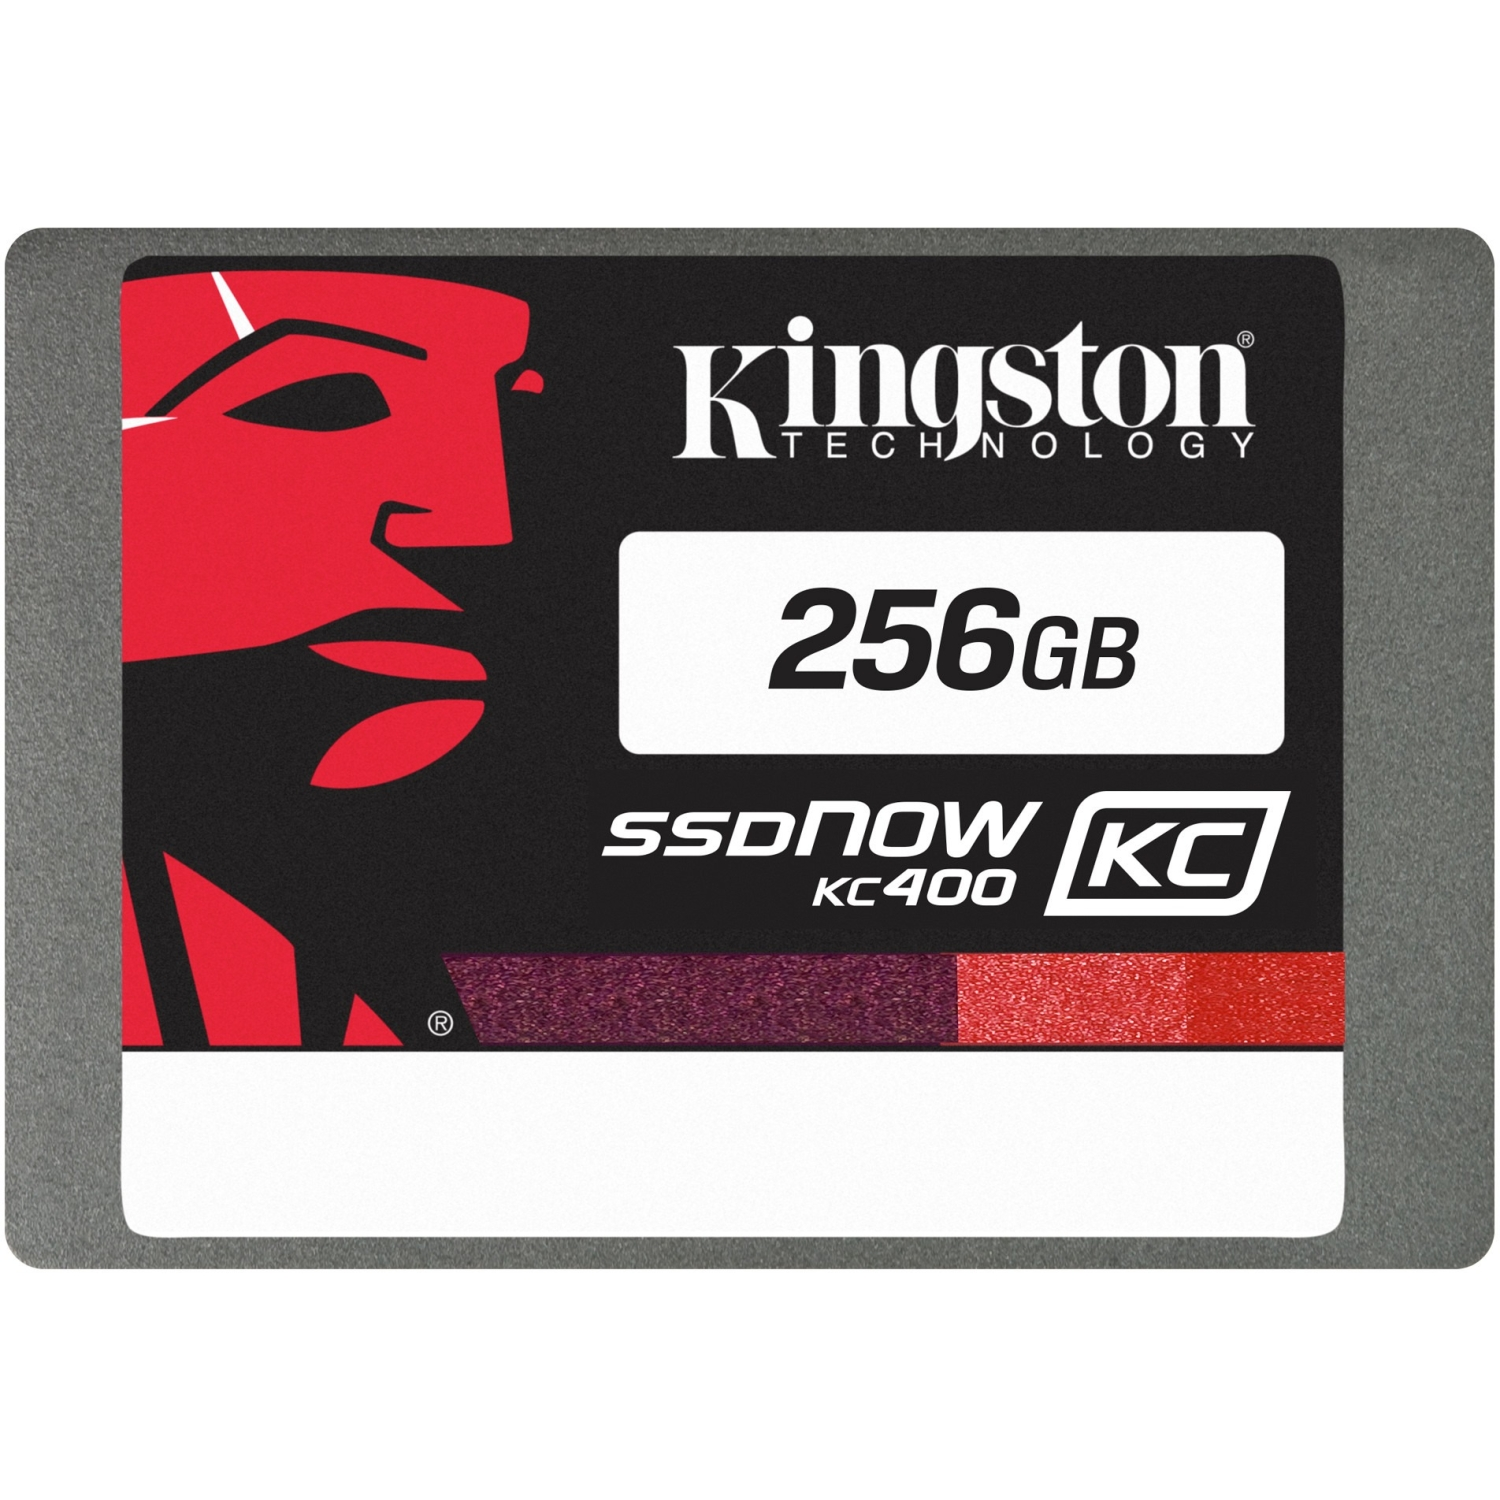 "Kingston 256GB SSDNow KC400 SSD SATA 3 2.5"" Flash Drive Upgrade Bundle Kit"